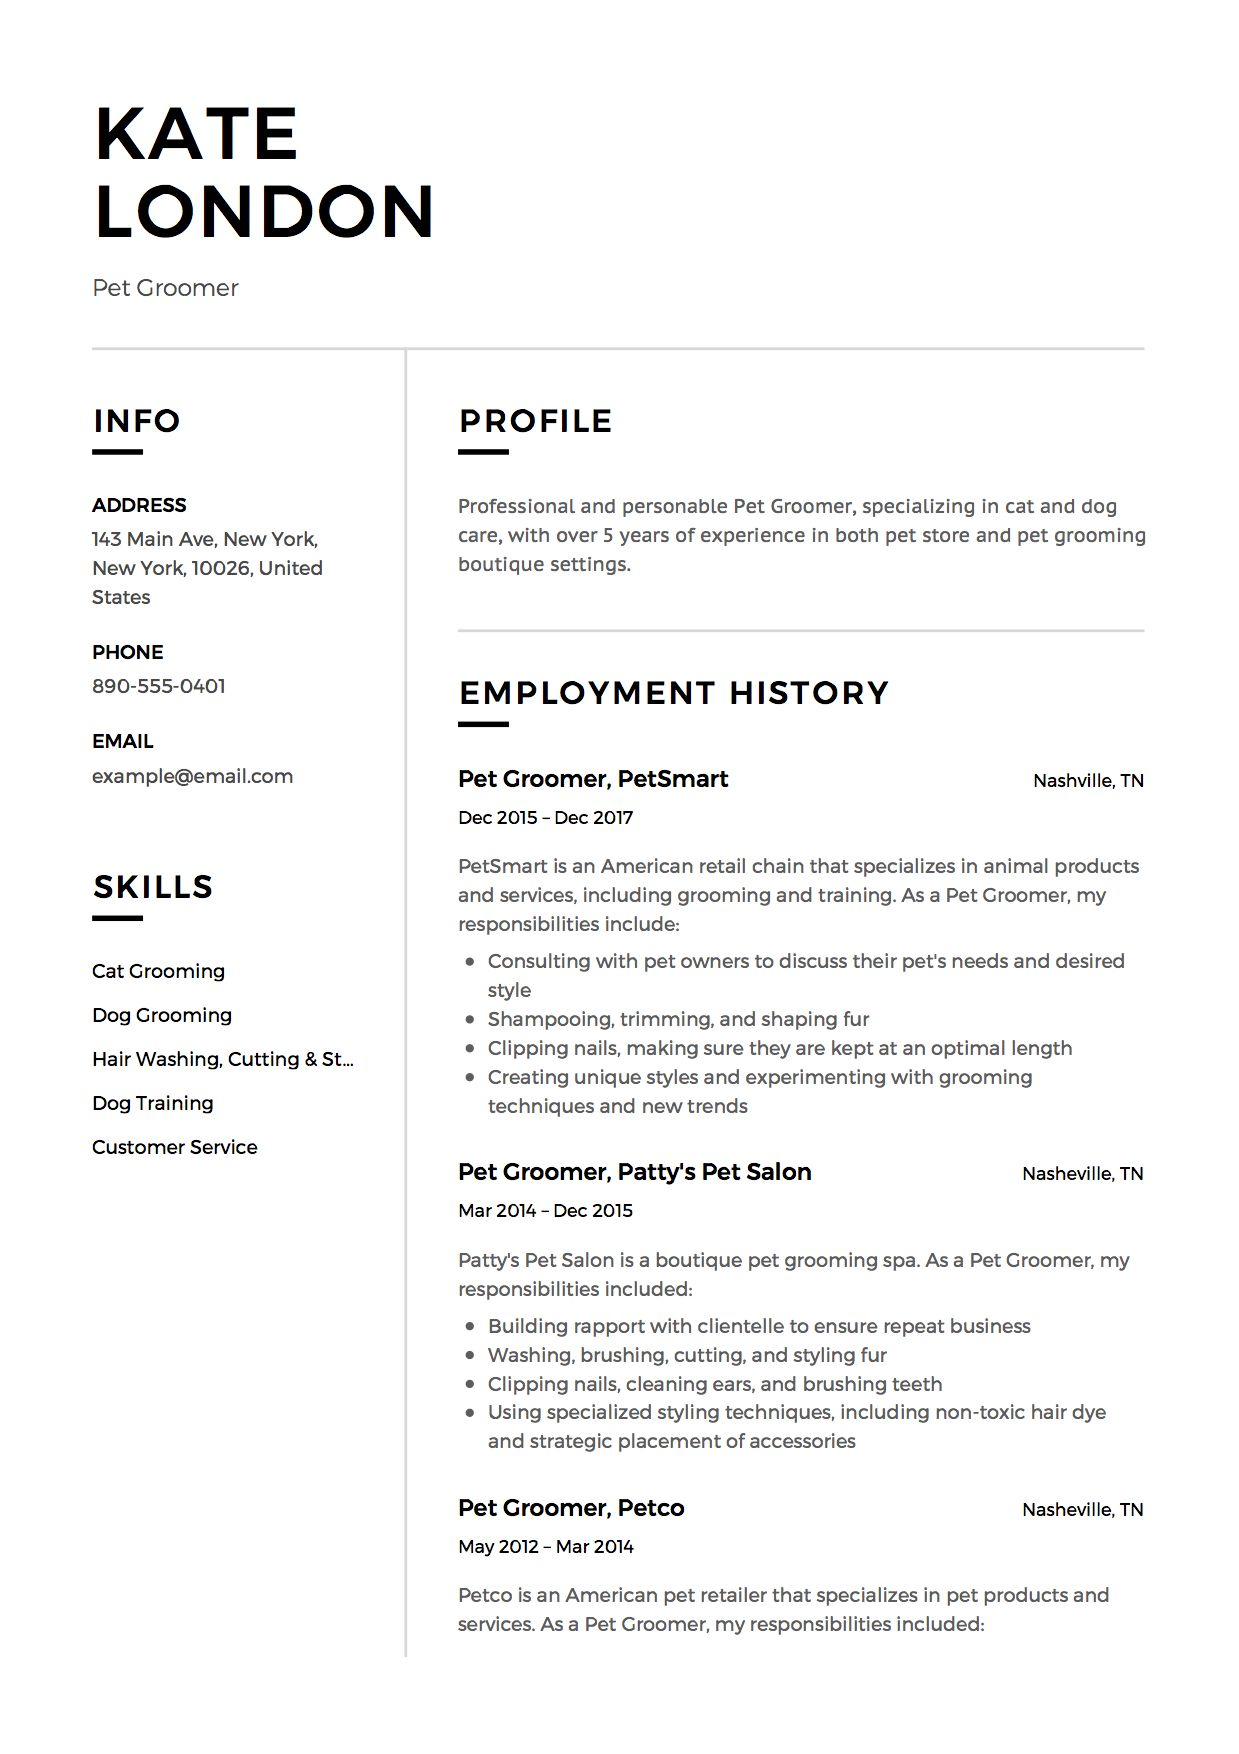 pet groomer resume example groomers dog cover letter legal template computer service Resume Dog Groomer Resume Cover Letter